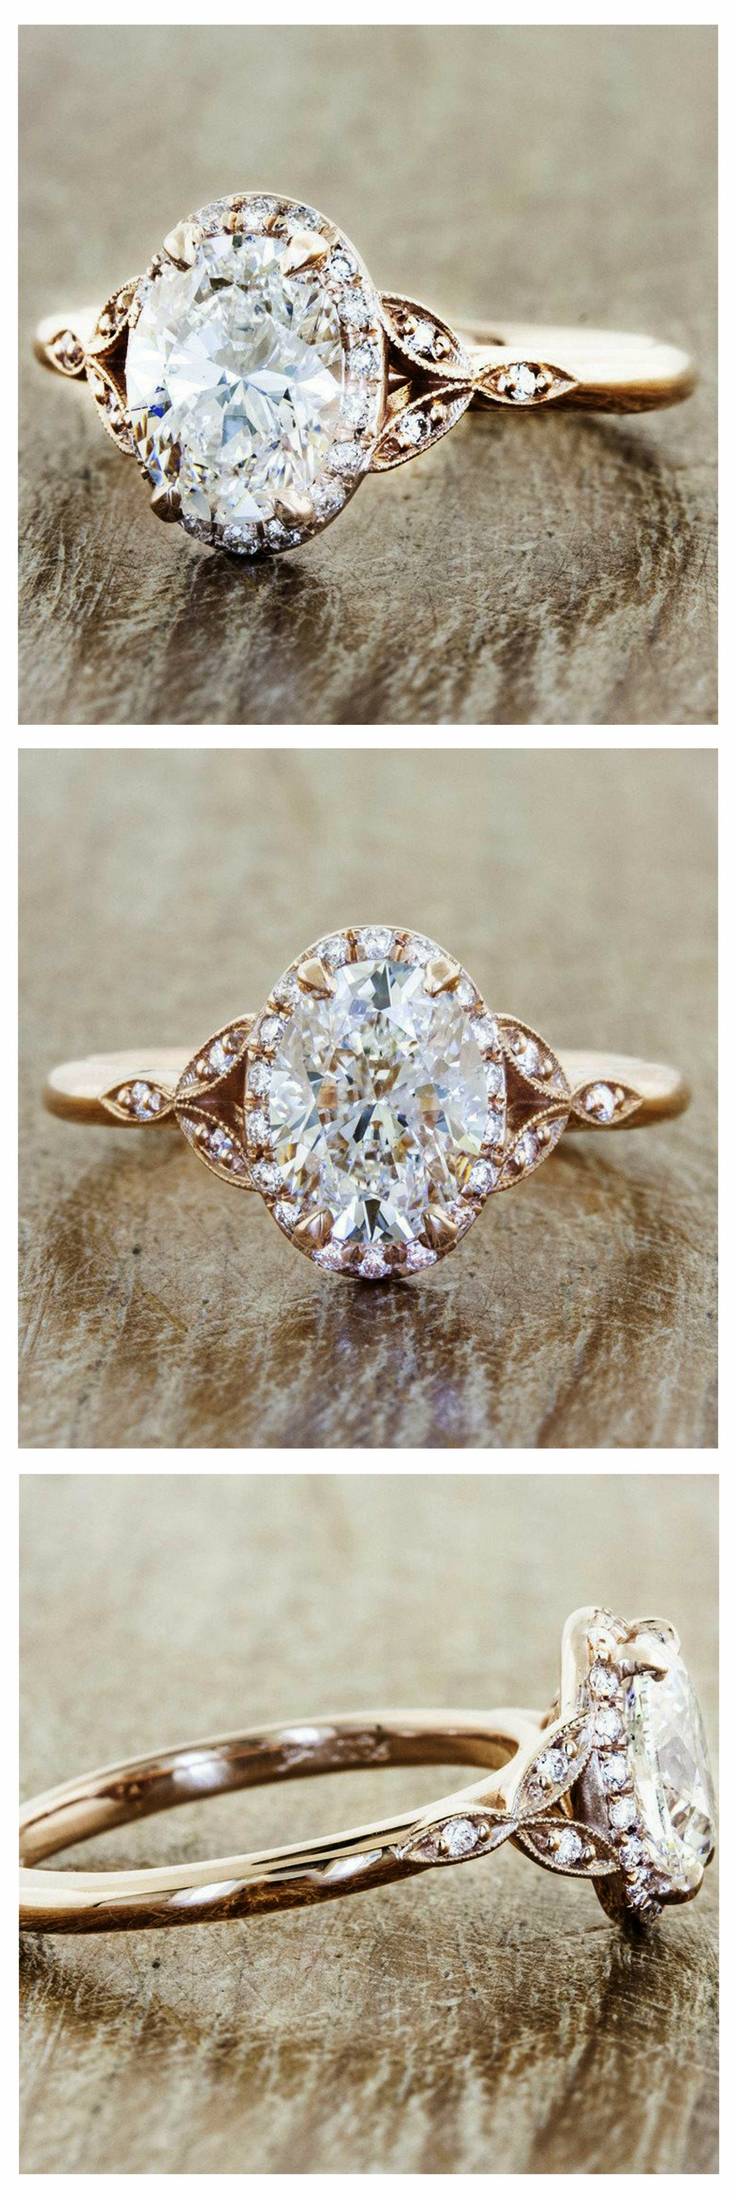 Oval Engagement Rings Nyc Vintage Wedding No Diamond Ovalengagementrings Diamondengagementrings